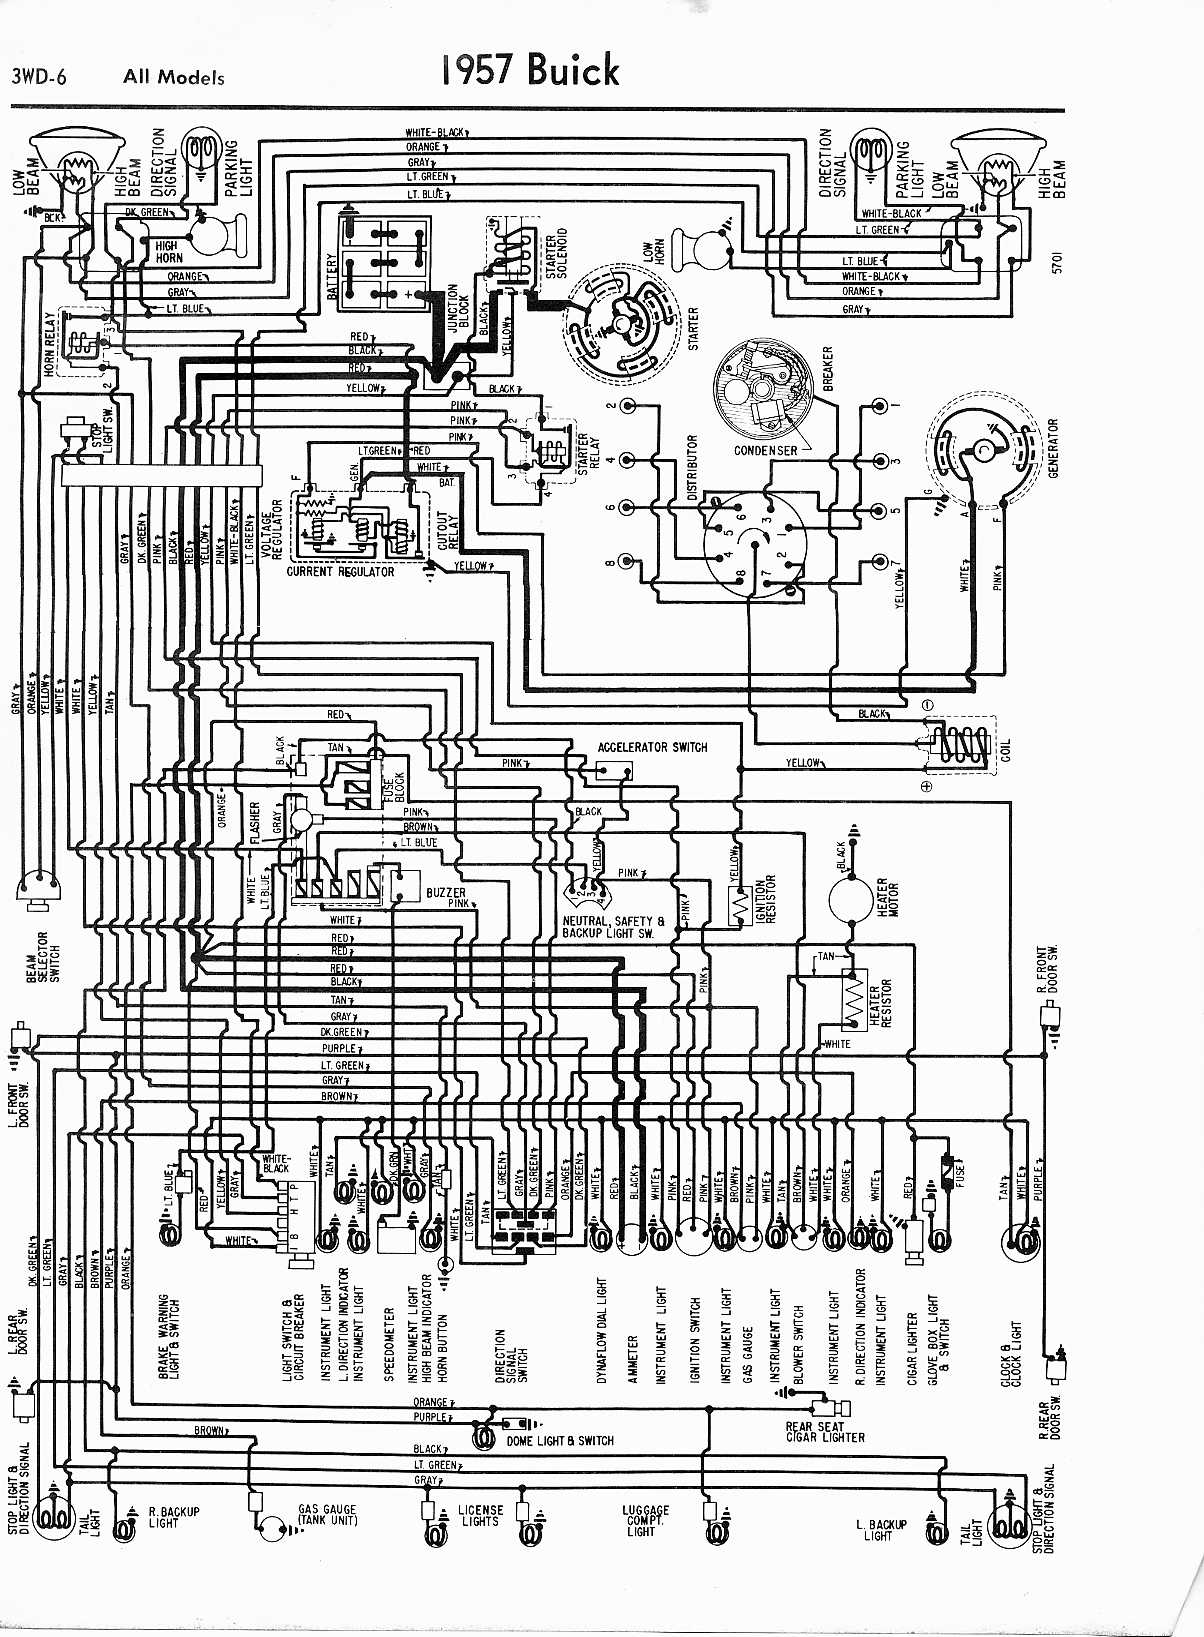 Lesabre Wiring Diagram Books Of 2003 Dodge Ram O2 Sensor Buick Diagrams 1957 1965 Rh Oldcarmanualproject Com 1997 02